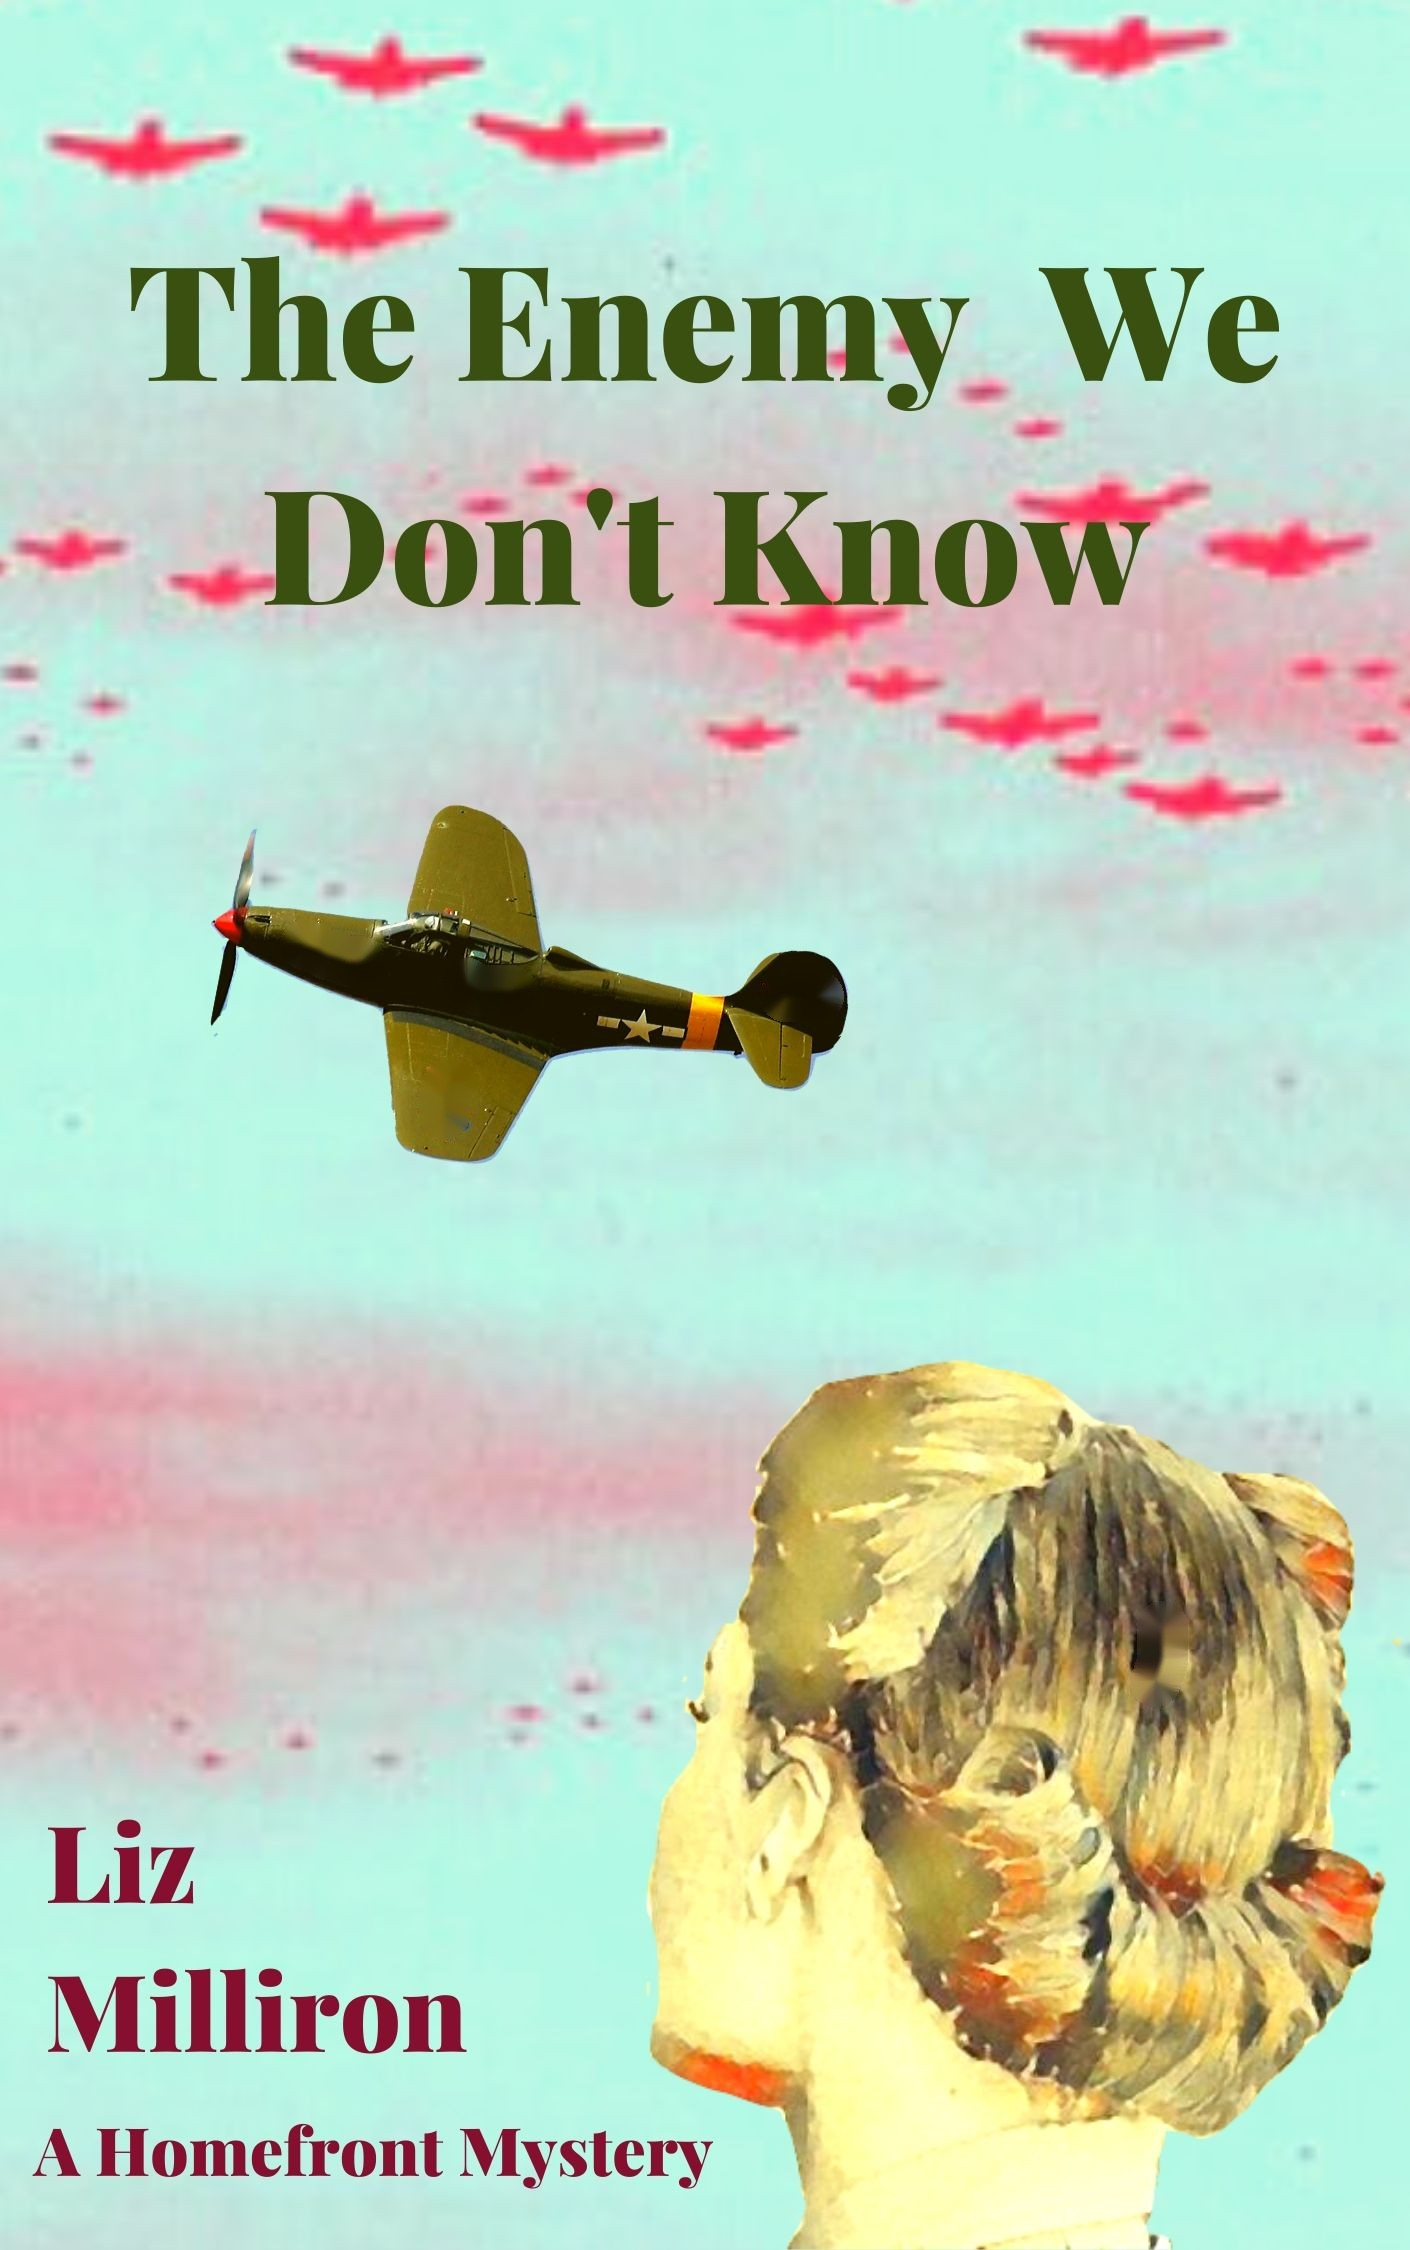 The cover of The Enemy We Don't Know